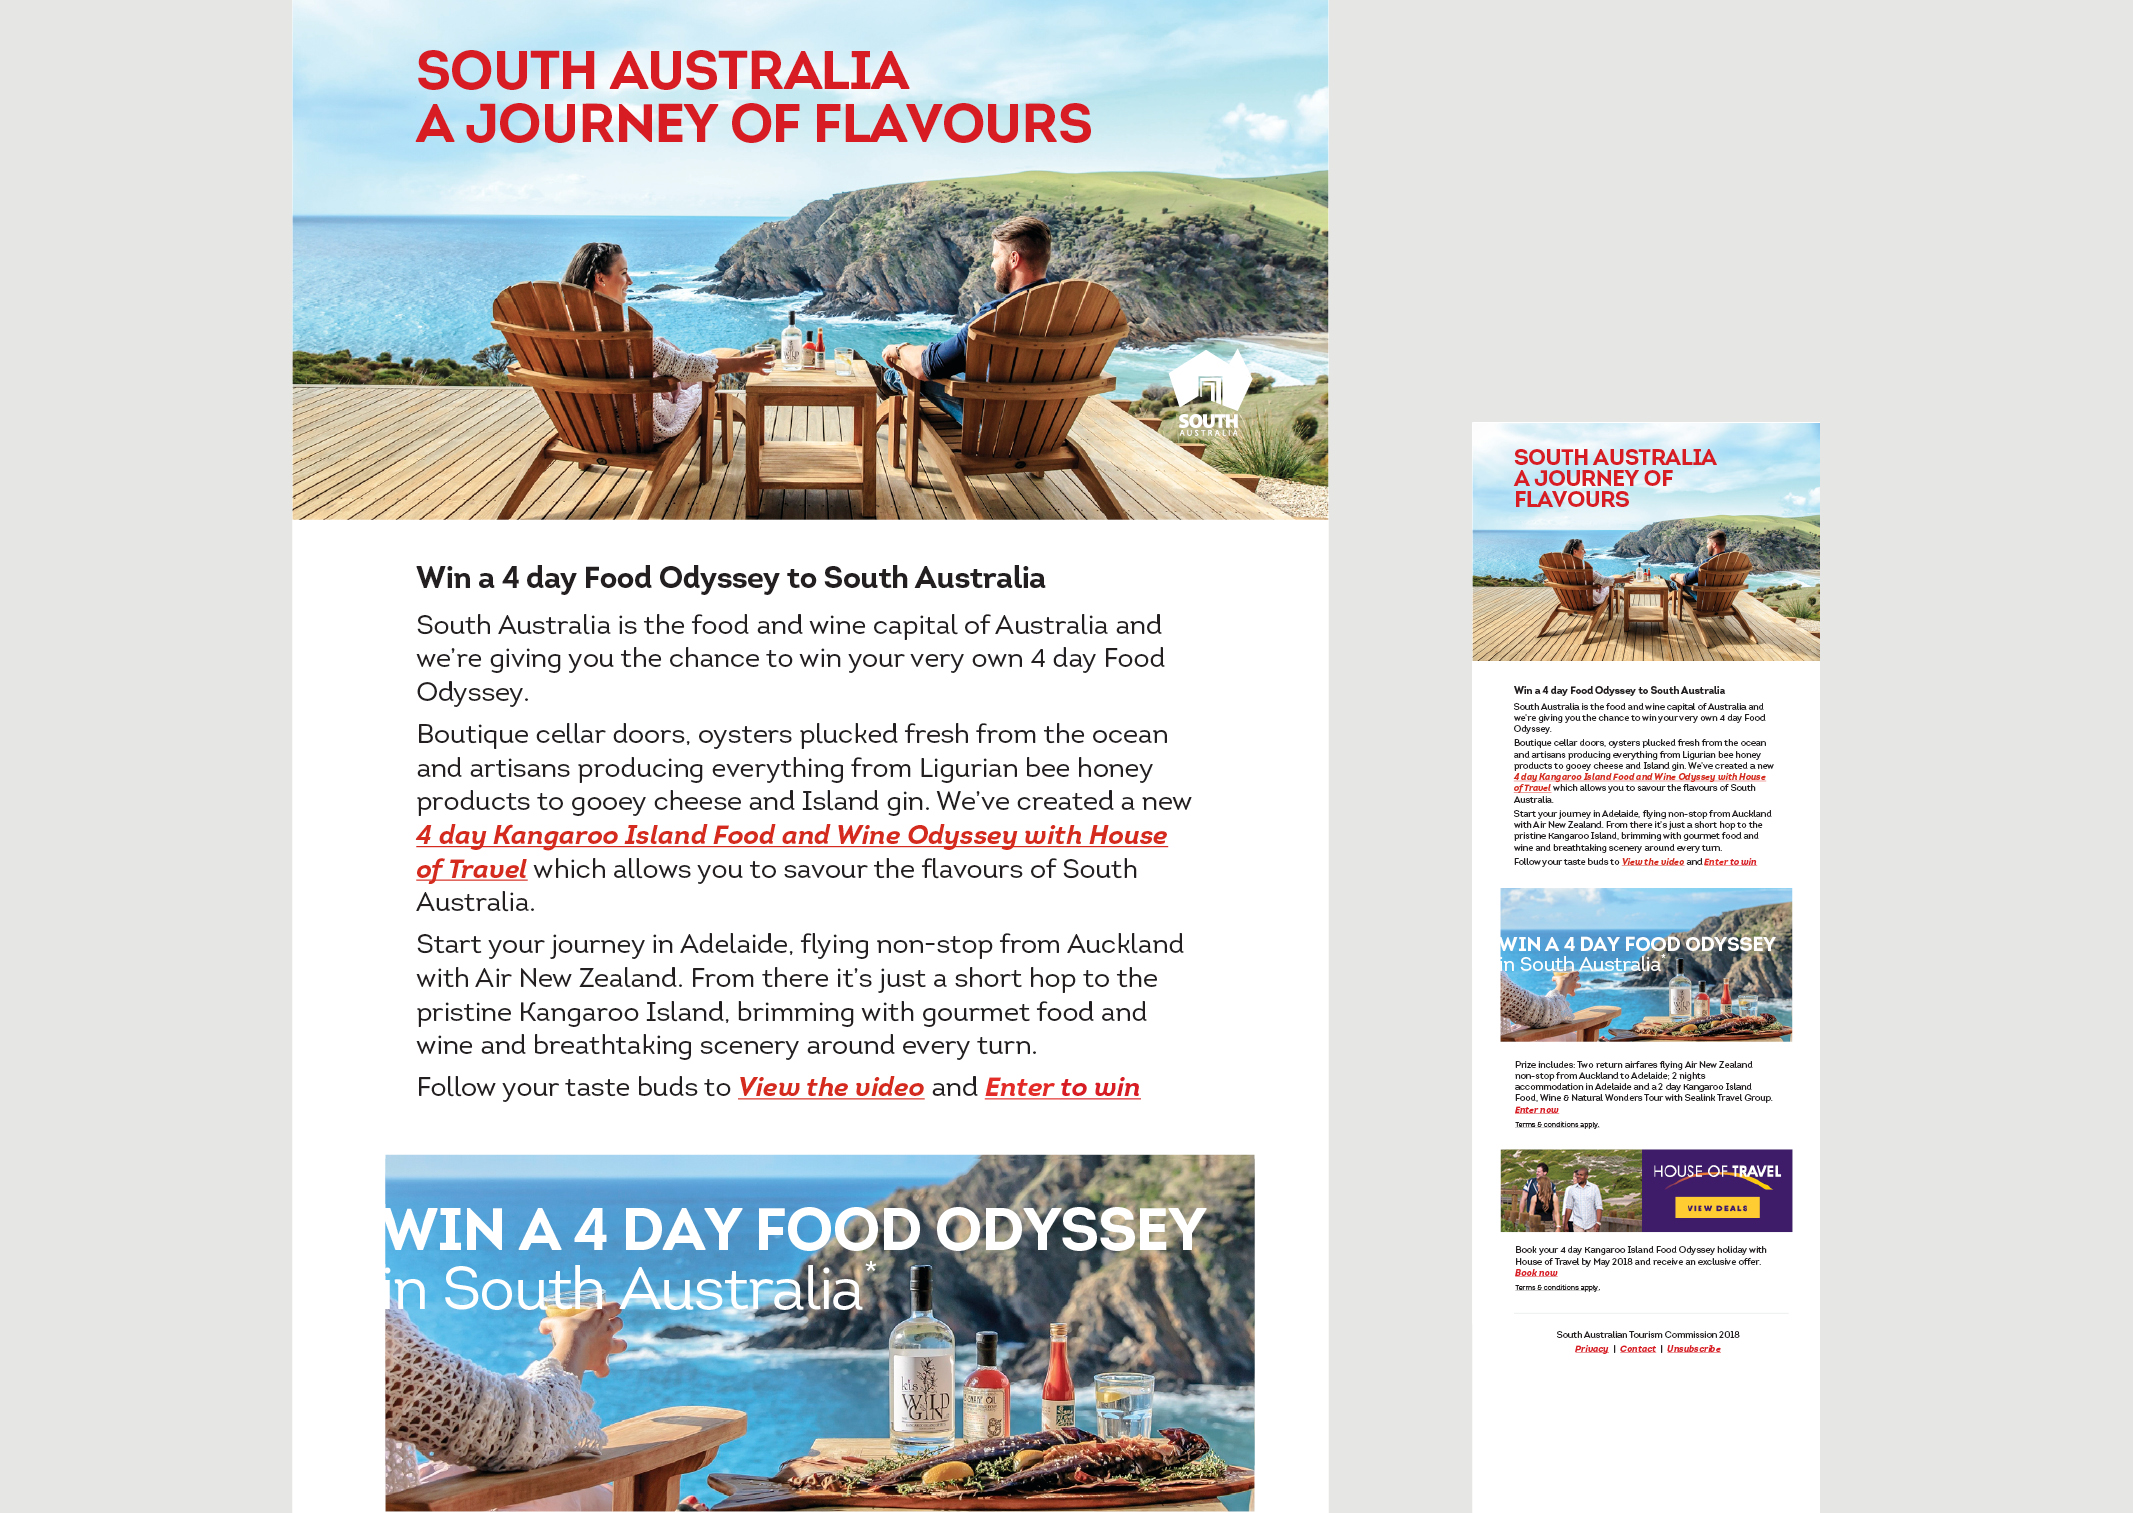 South Australia Tourism EDM promoting 4 Day Food Odyssey Kangaroo Island